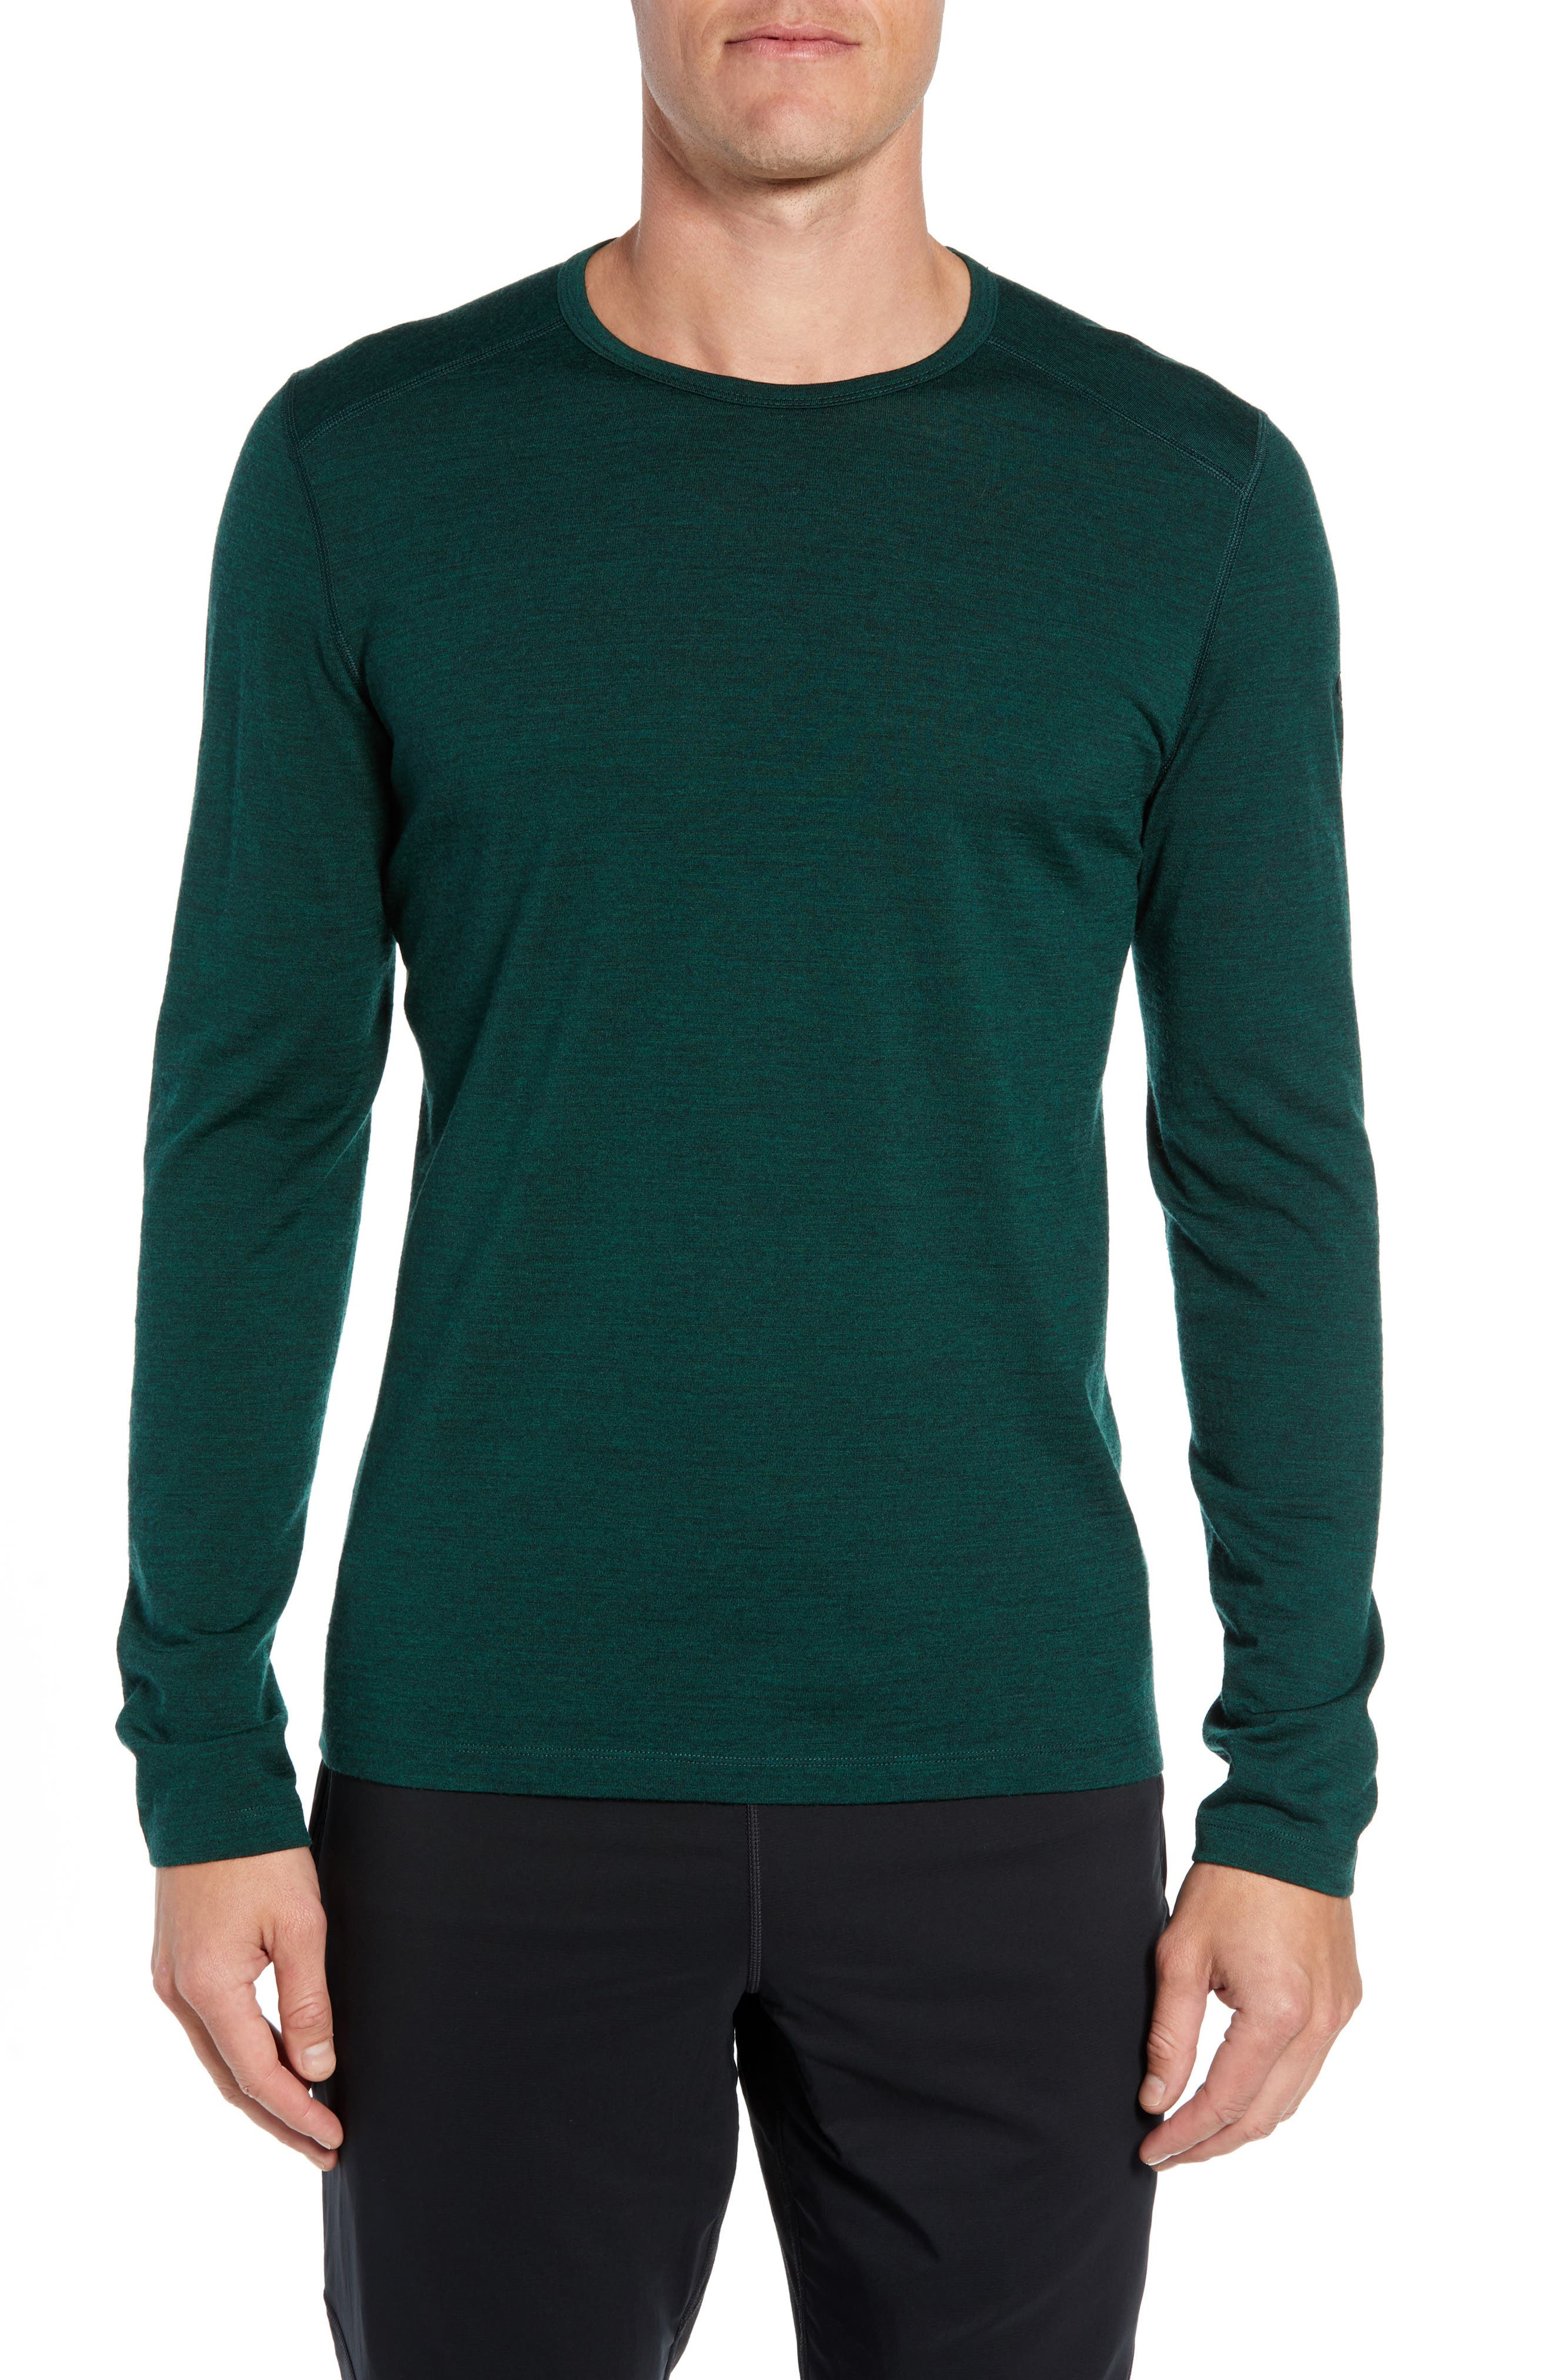 Oasis Slim Merino Wool T-Shirt,                         Main,                         color, IMPERIAL HEATHER